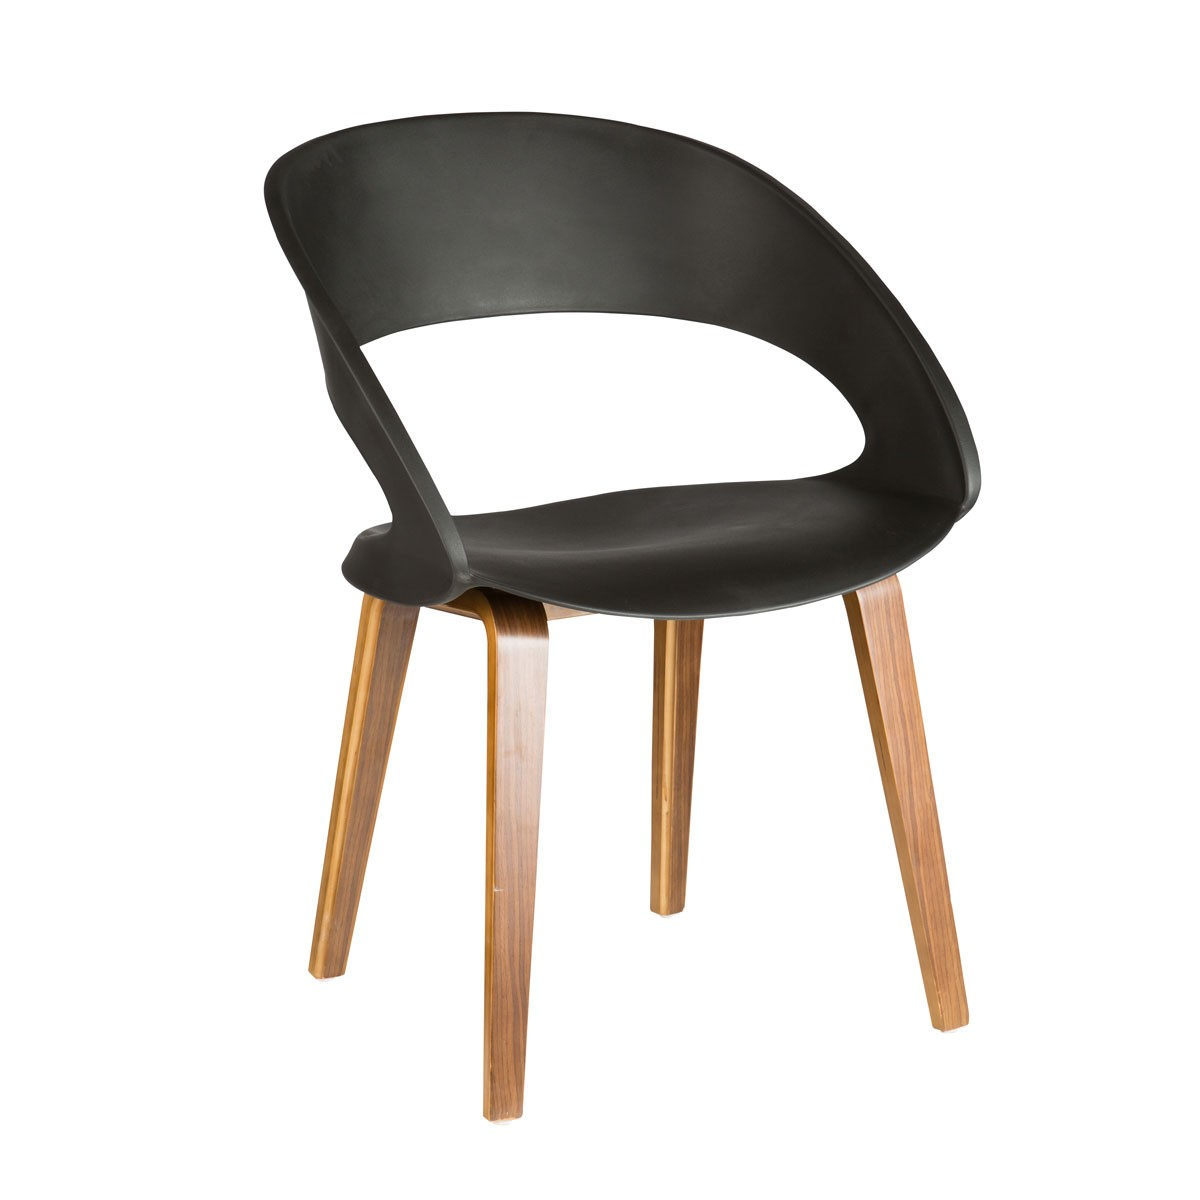 black plastic chair with wooden legs diy stand molded in wood ymg 9307b